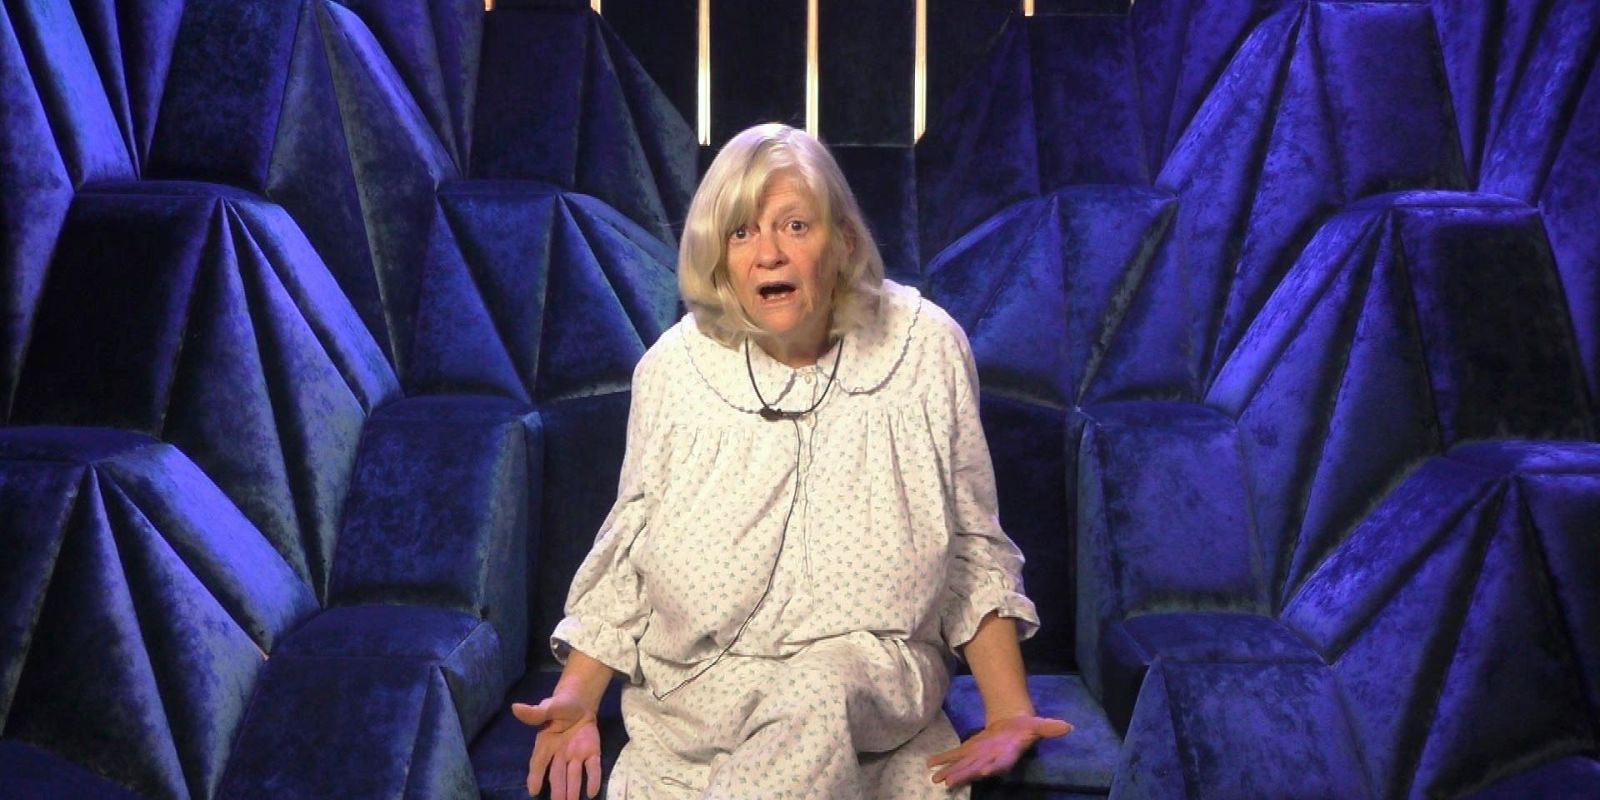 pinknews.co.uk - Eve Hartley - Extreme anti-LGBT politician Ann Widdecombe to stand for Brexit Party